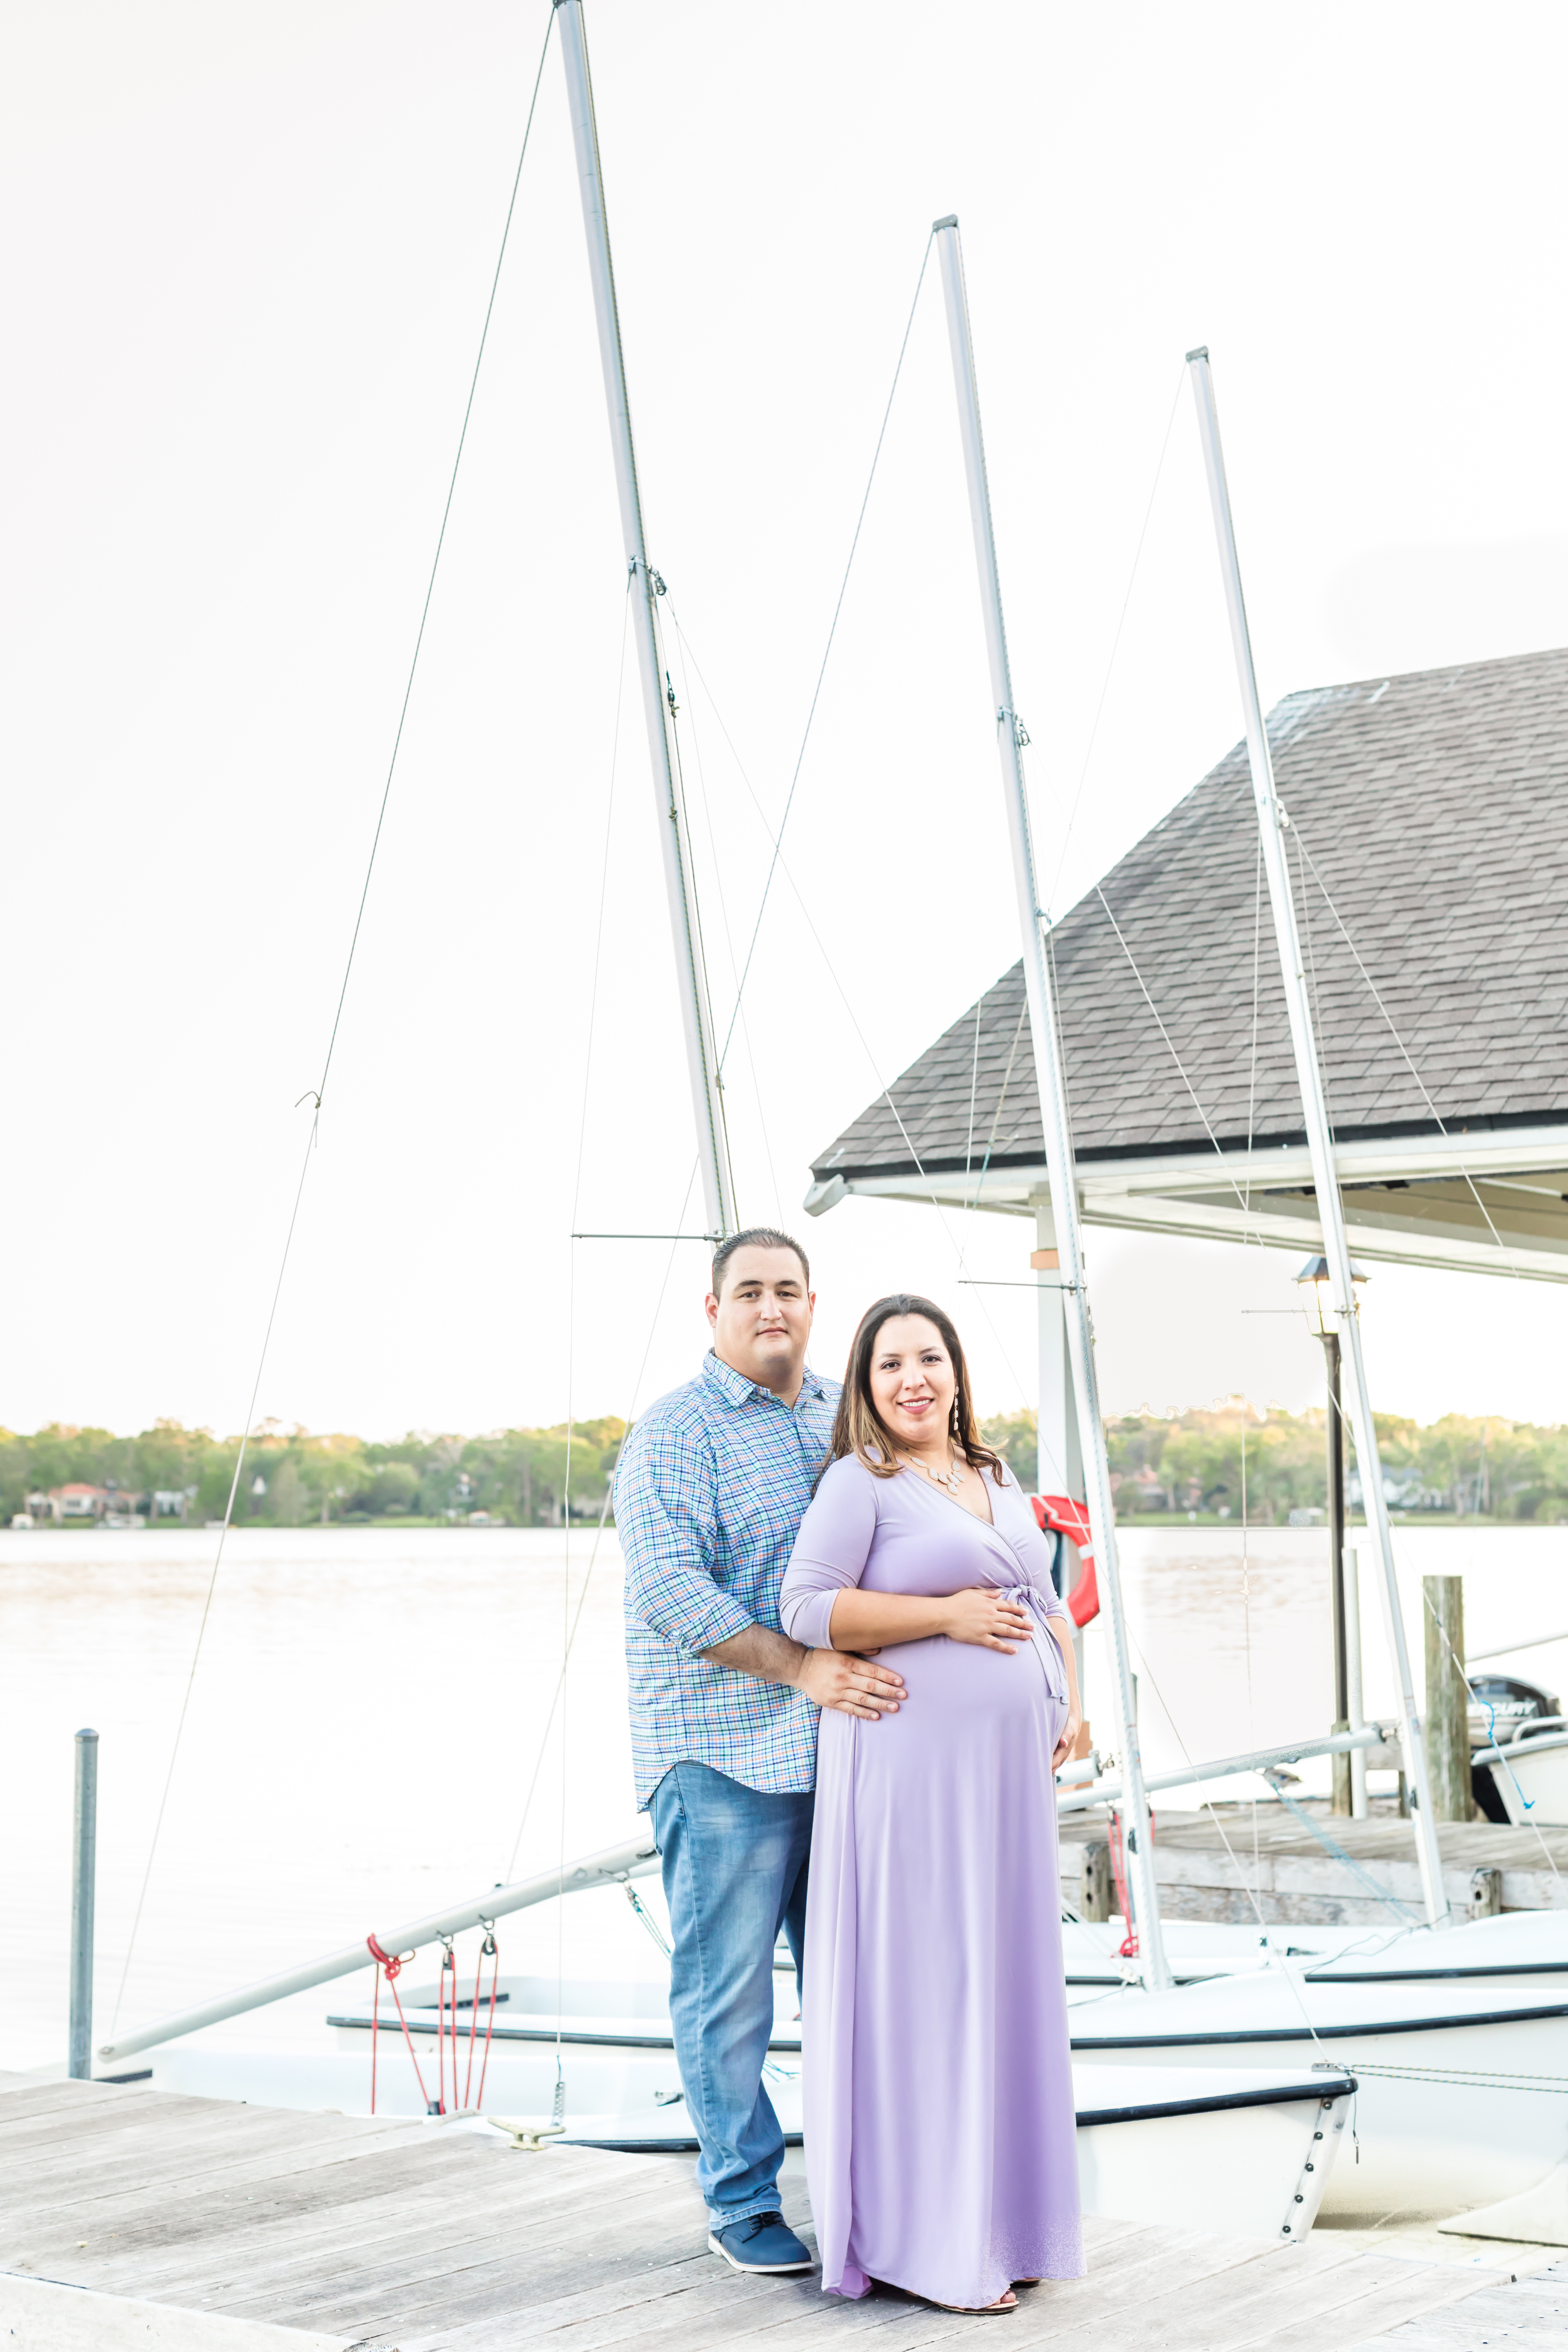 Diego & Mafe Maternity Session